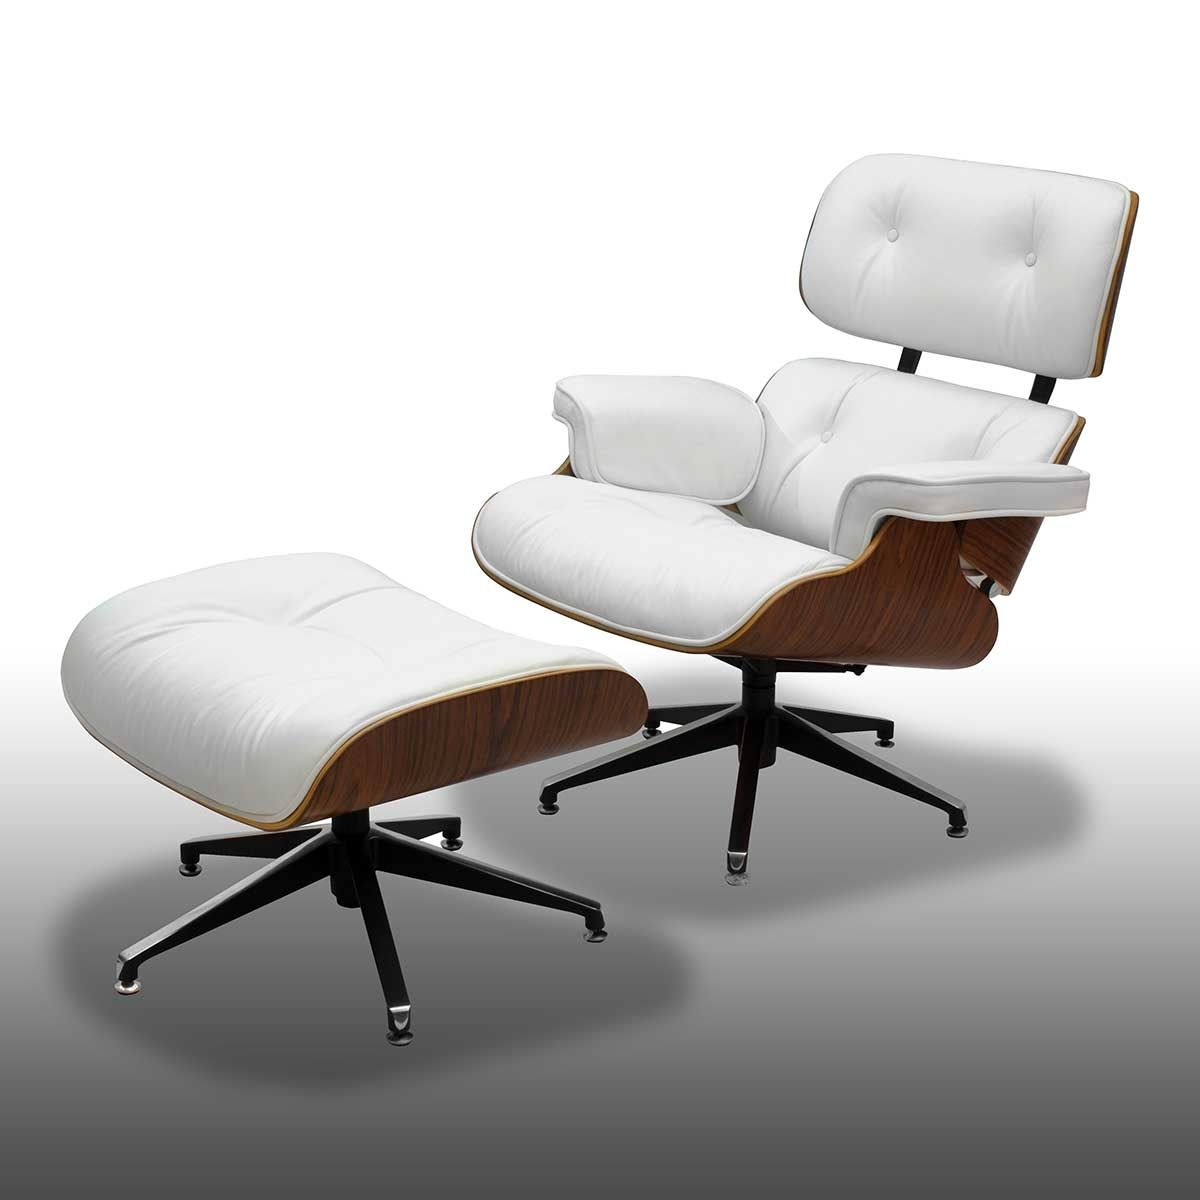 Lounge Chair and Ottoman Charles Eames Herman Miller